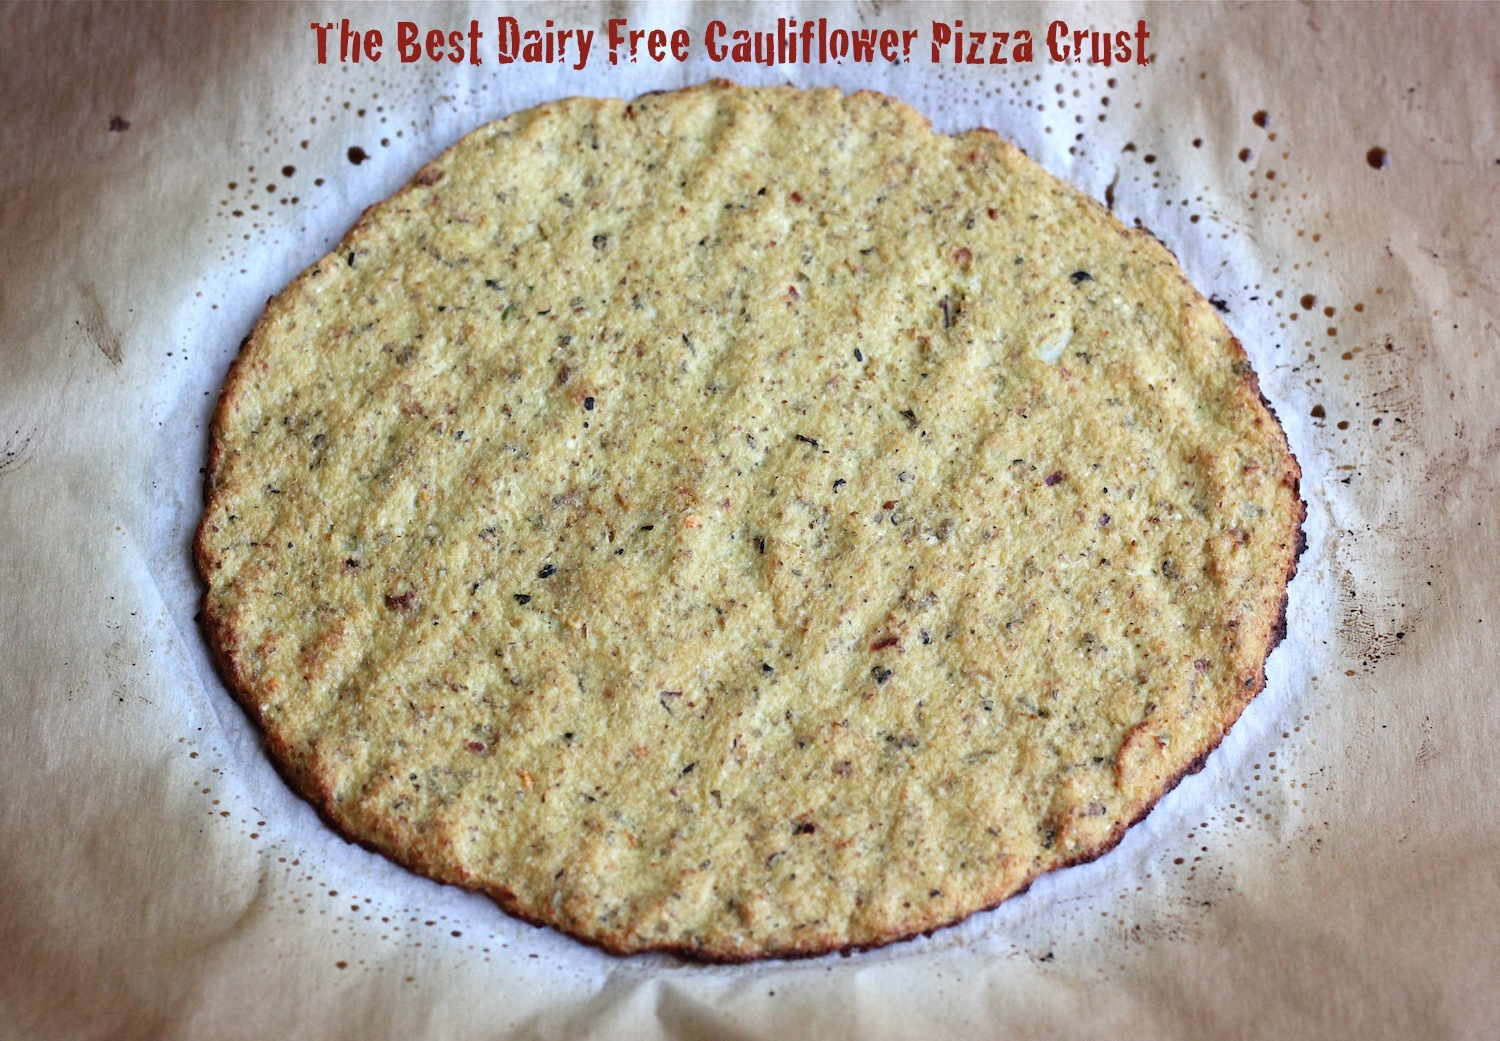 The lucky penny blog the best dairy free cauliflower pizza crust monday may 27 2013 forumfinder Images